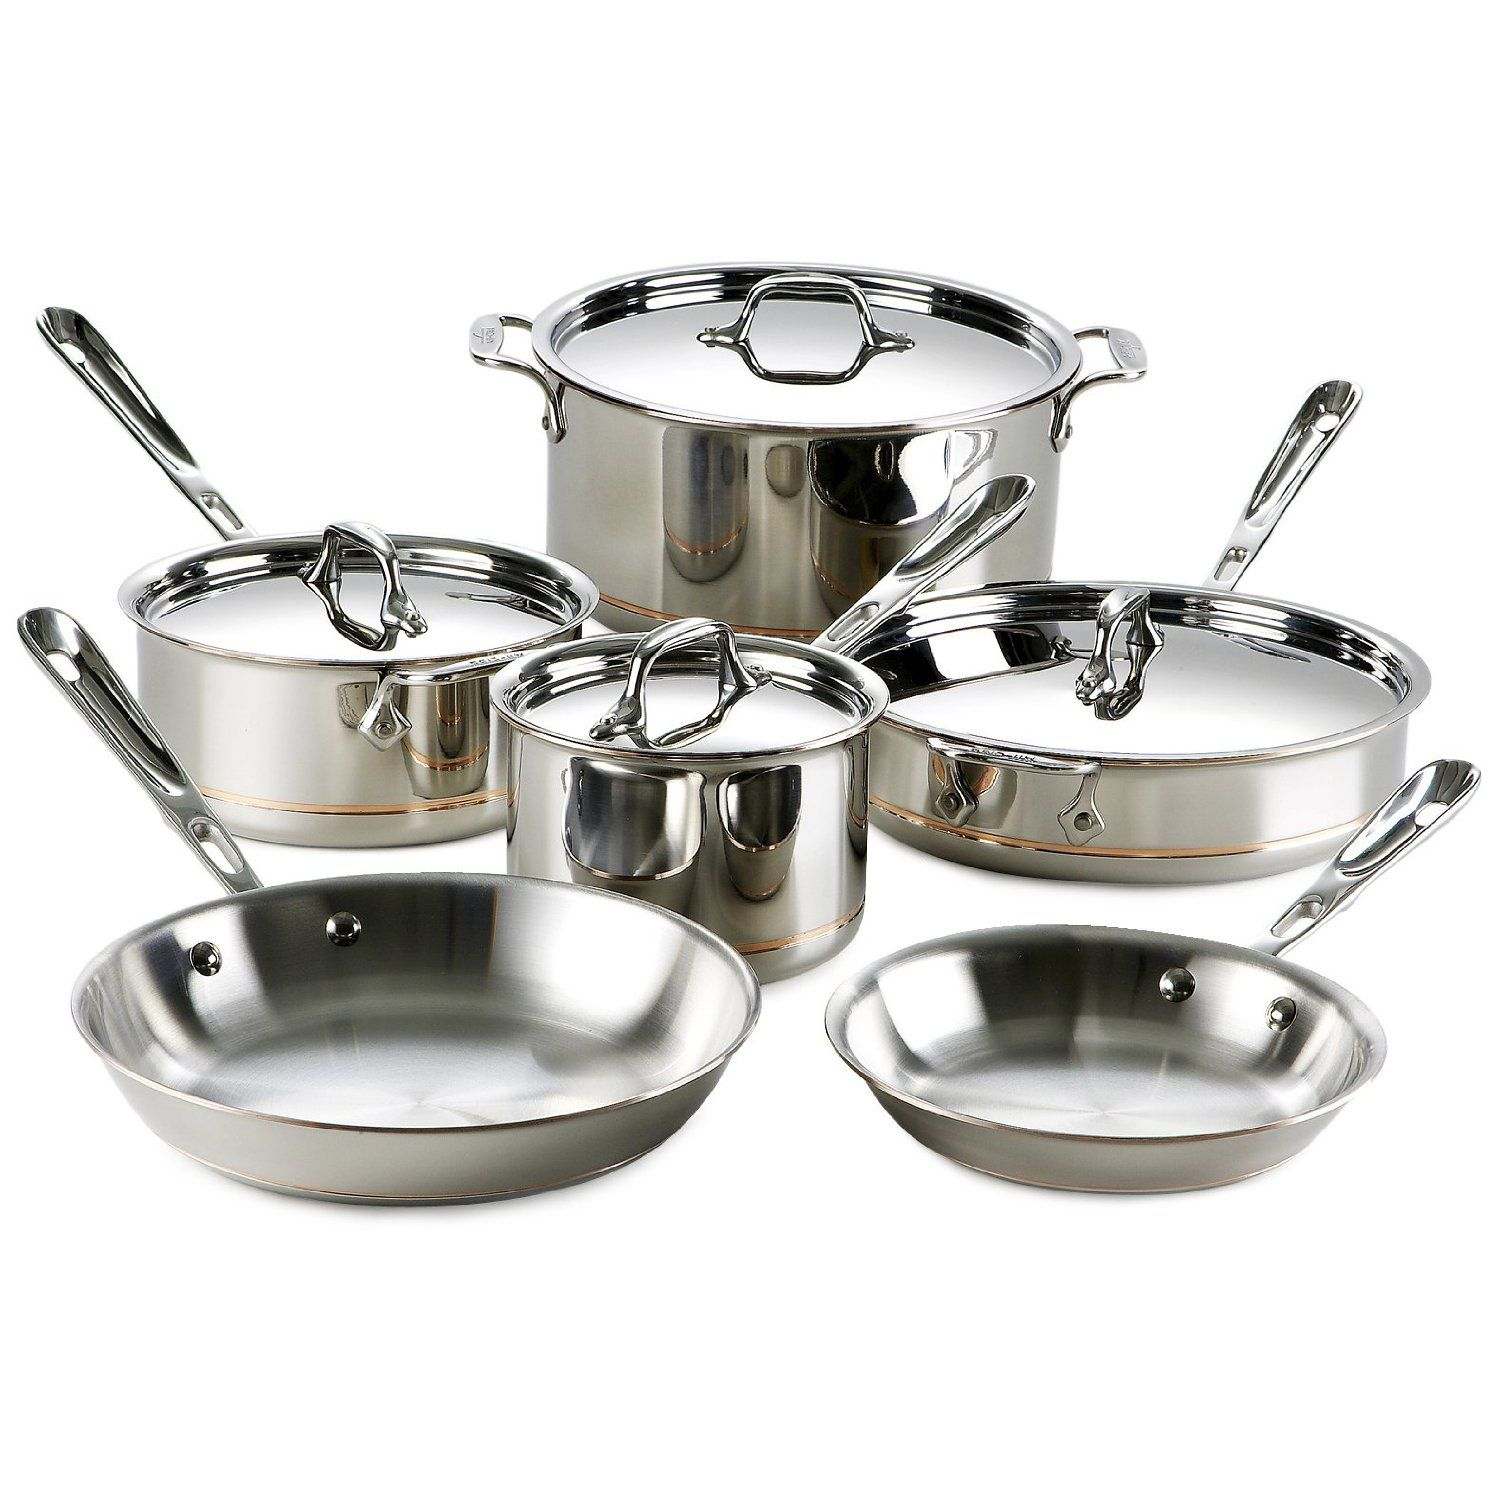 All Clad Copper Core Cookware Set The Advantages Of Copper Without The Nuisance Cookware Set Stainless Steel Cookware Set Dishwasher Safe Cookware